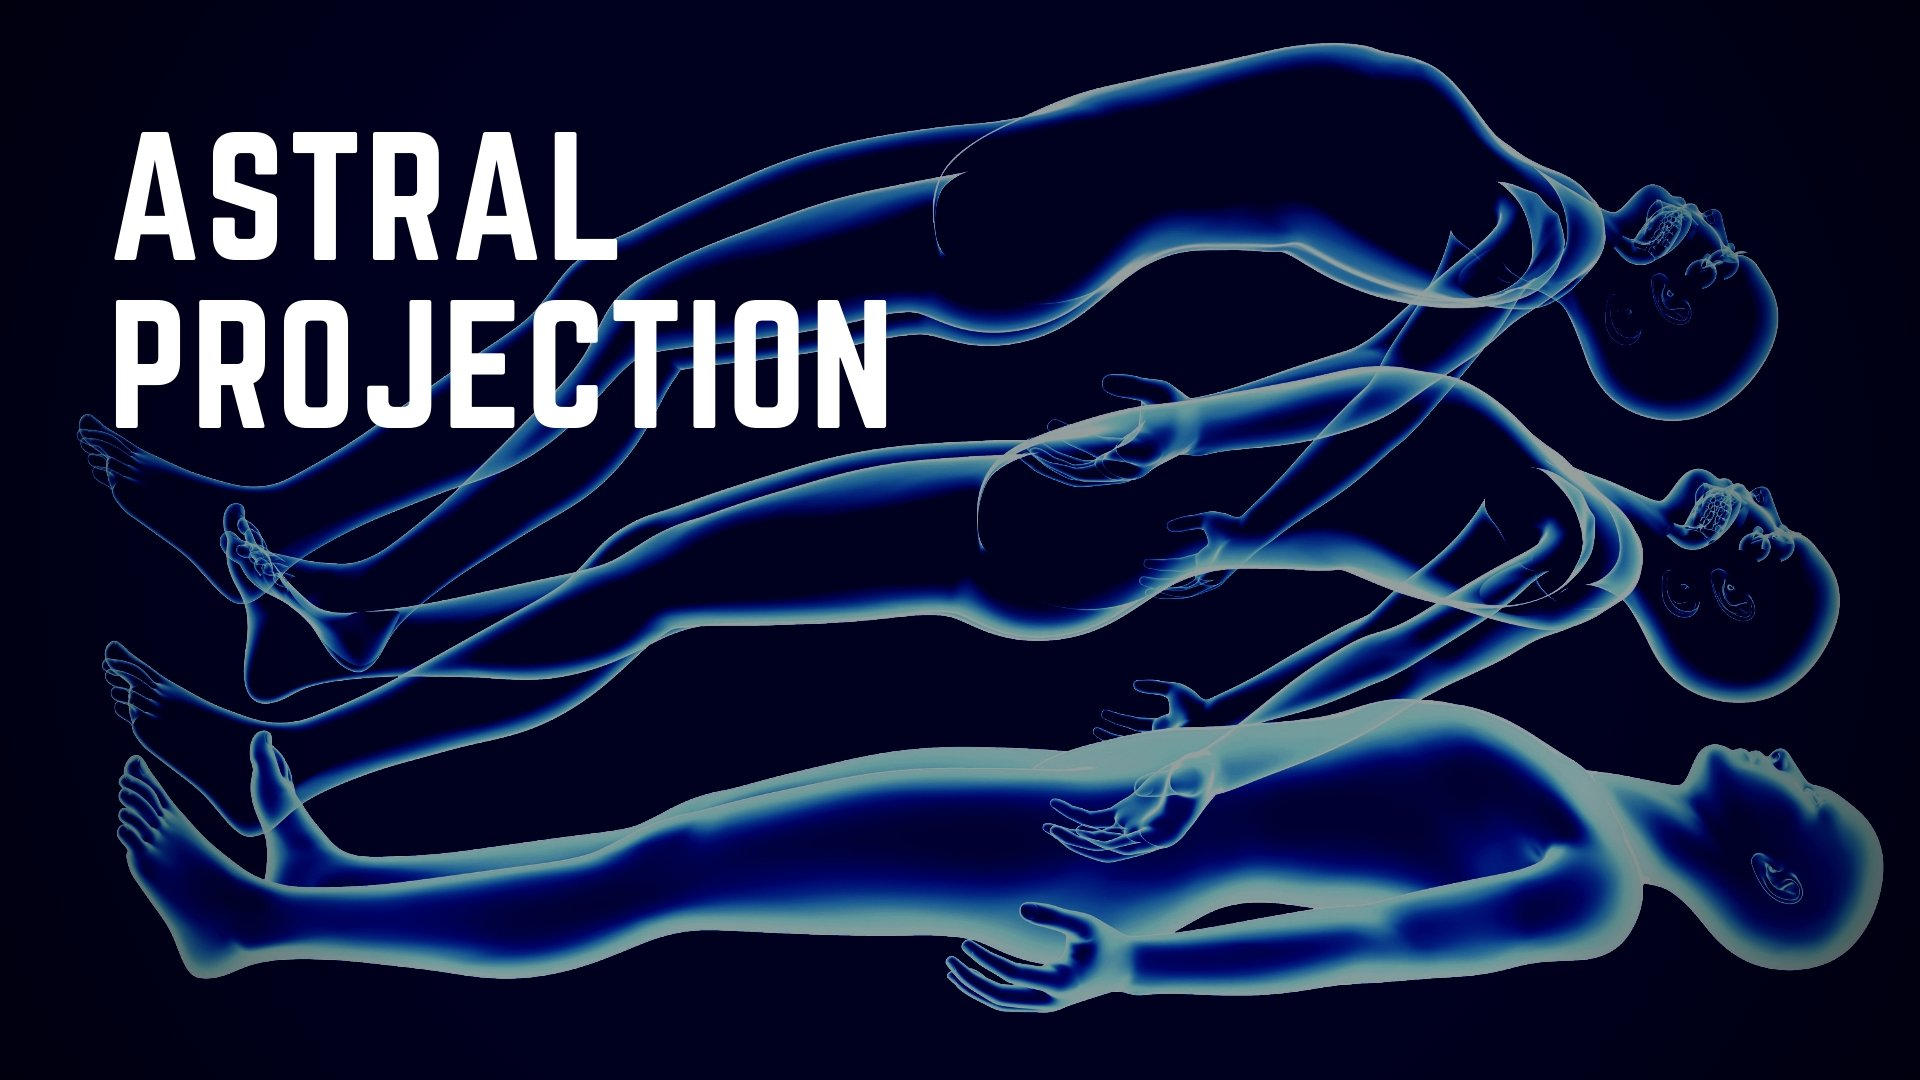 Astral Projection - Official Church of Illuminism